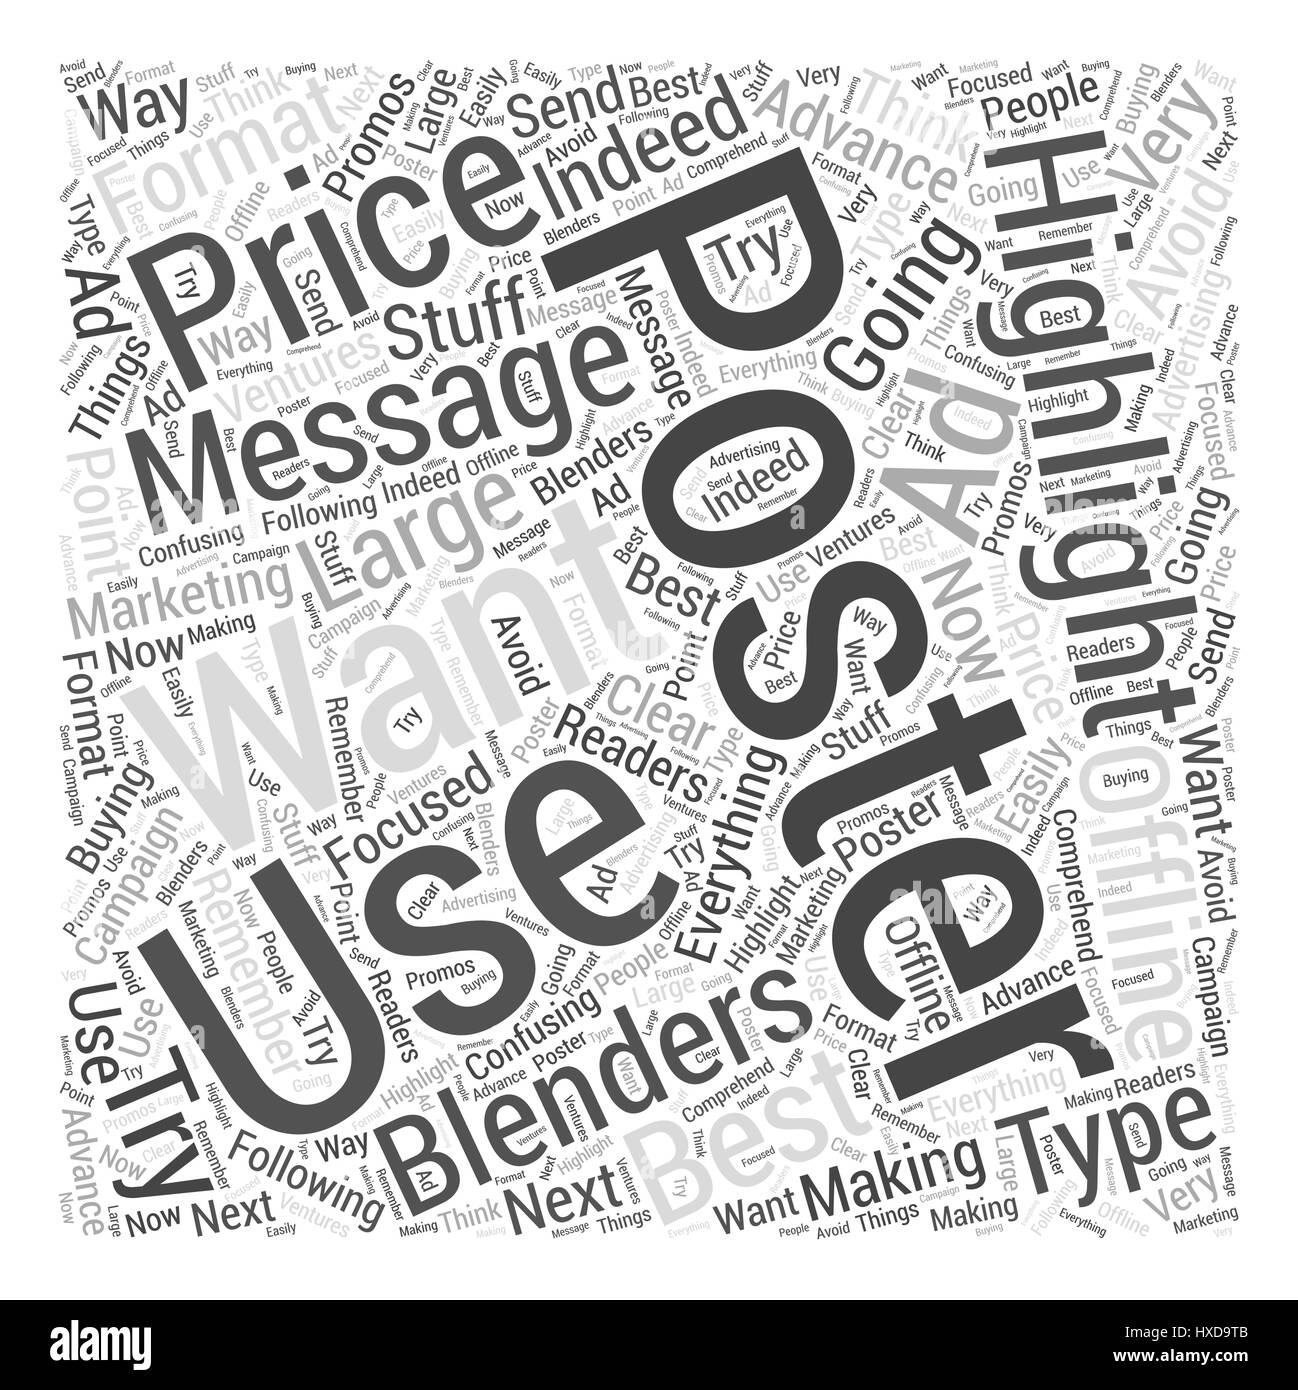 how to use the message best price on blenders on posters word cloud